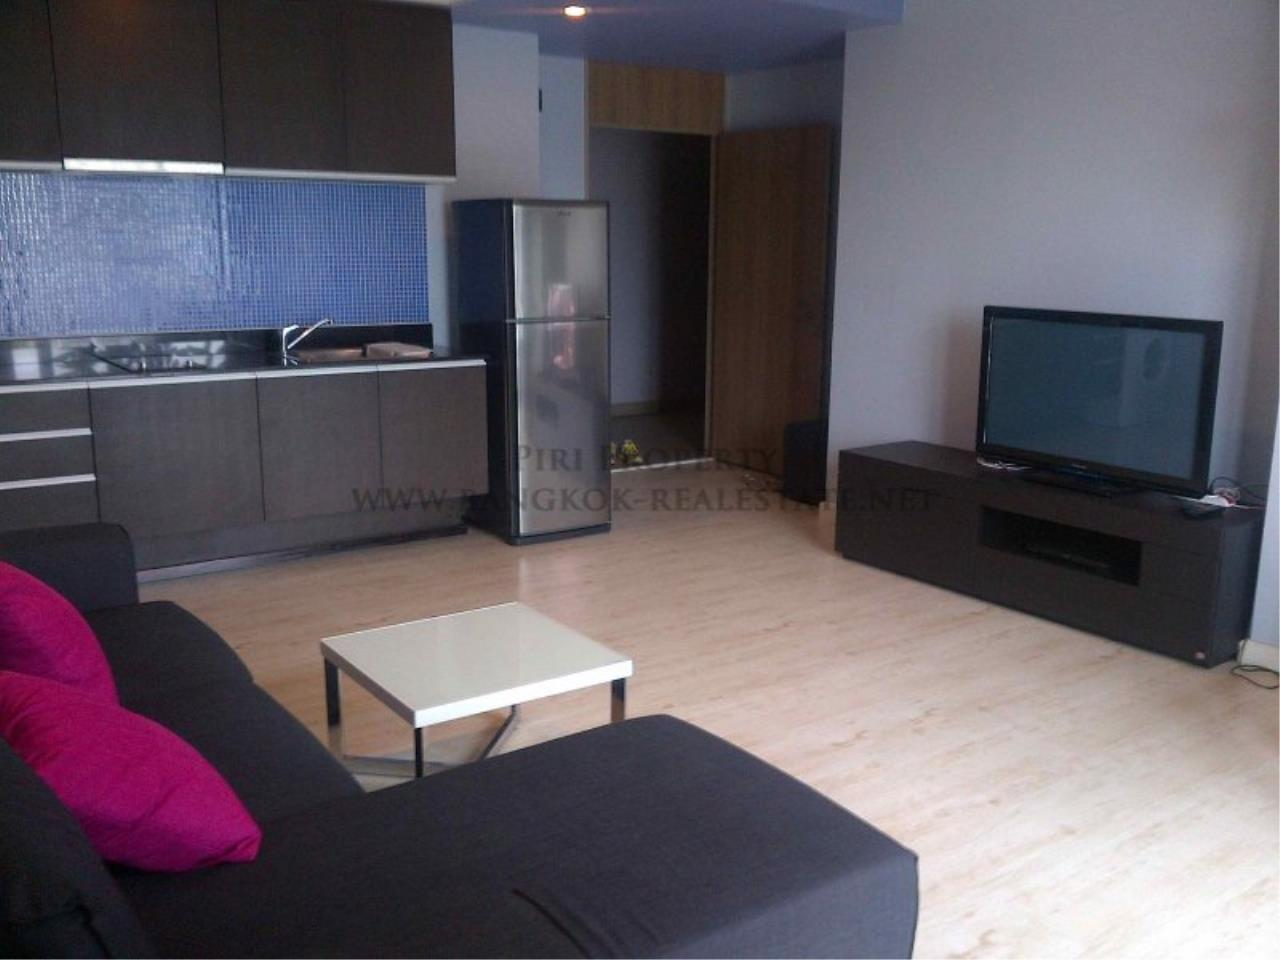 Piri Property Agency's Noble Reflex Condo for Rent - Modern And Spacious 68 SQM 1 Bedroom 2